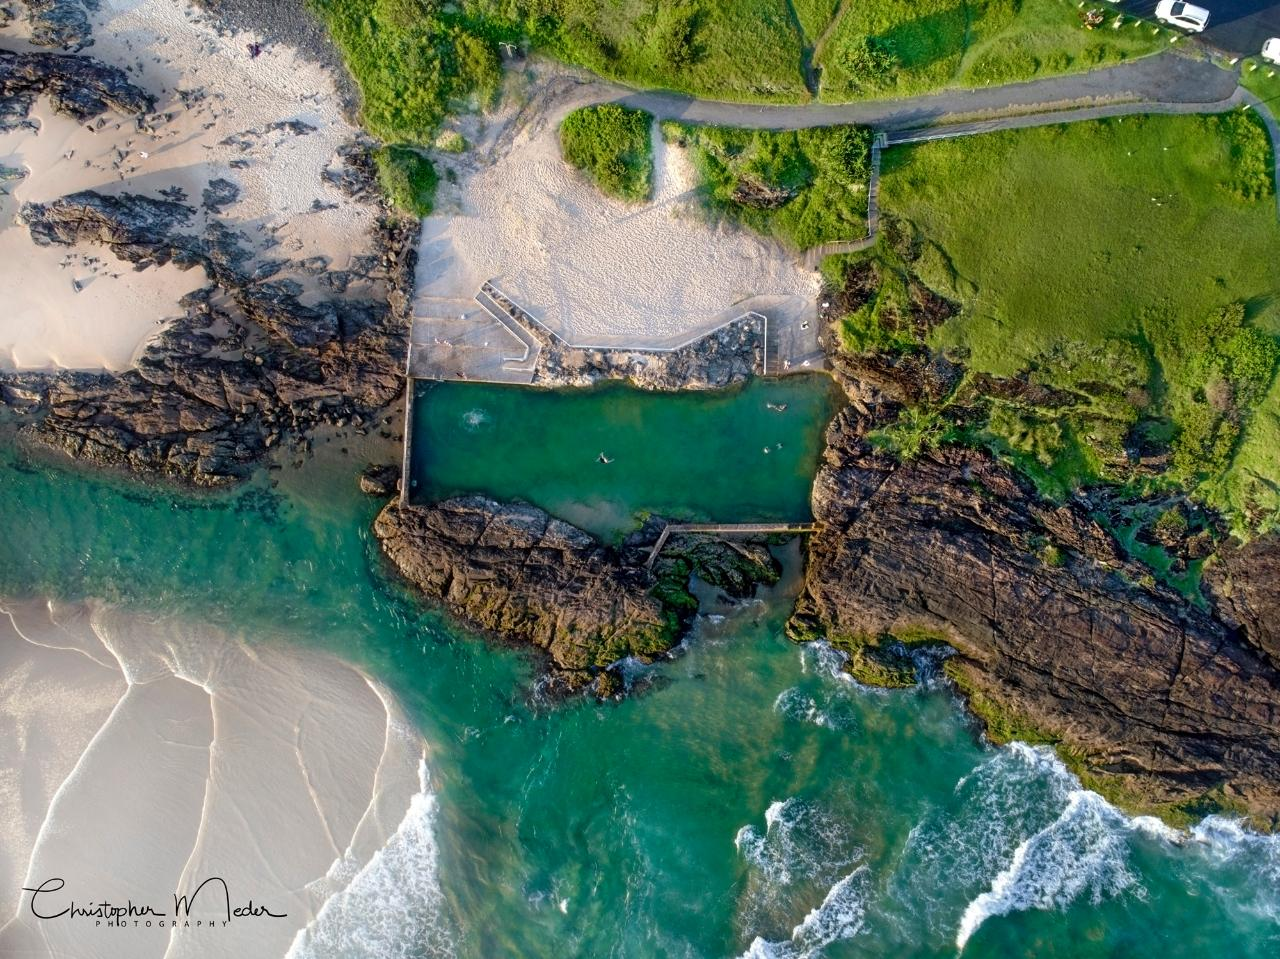 Aerial photography, drone photography by Christopher Meder Photography